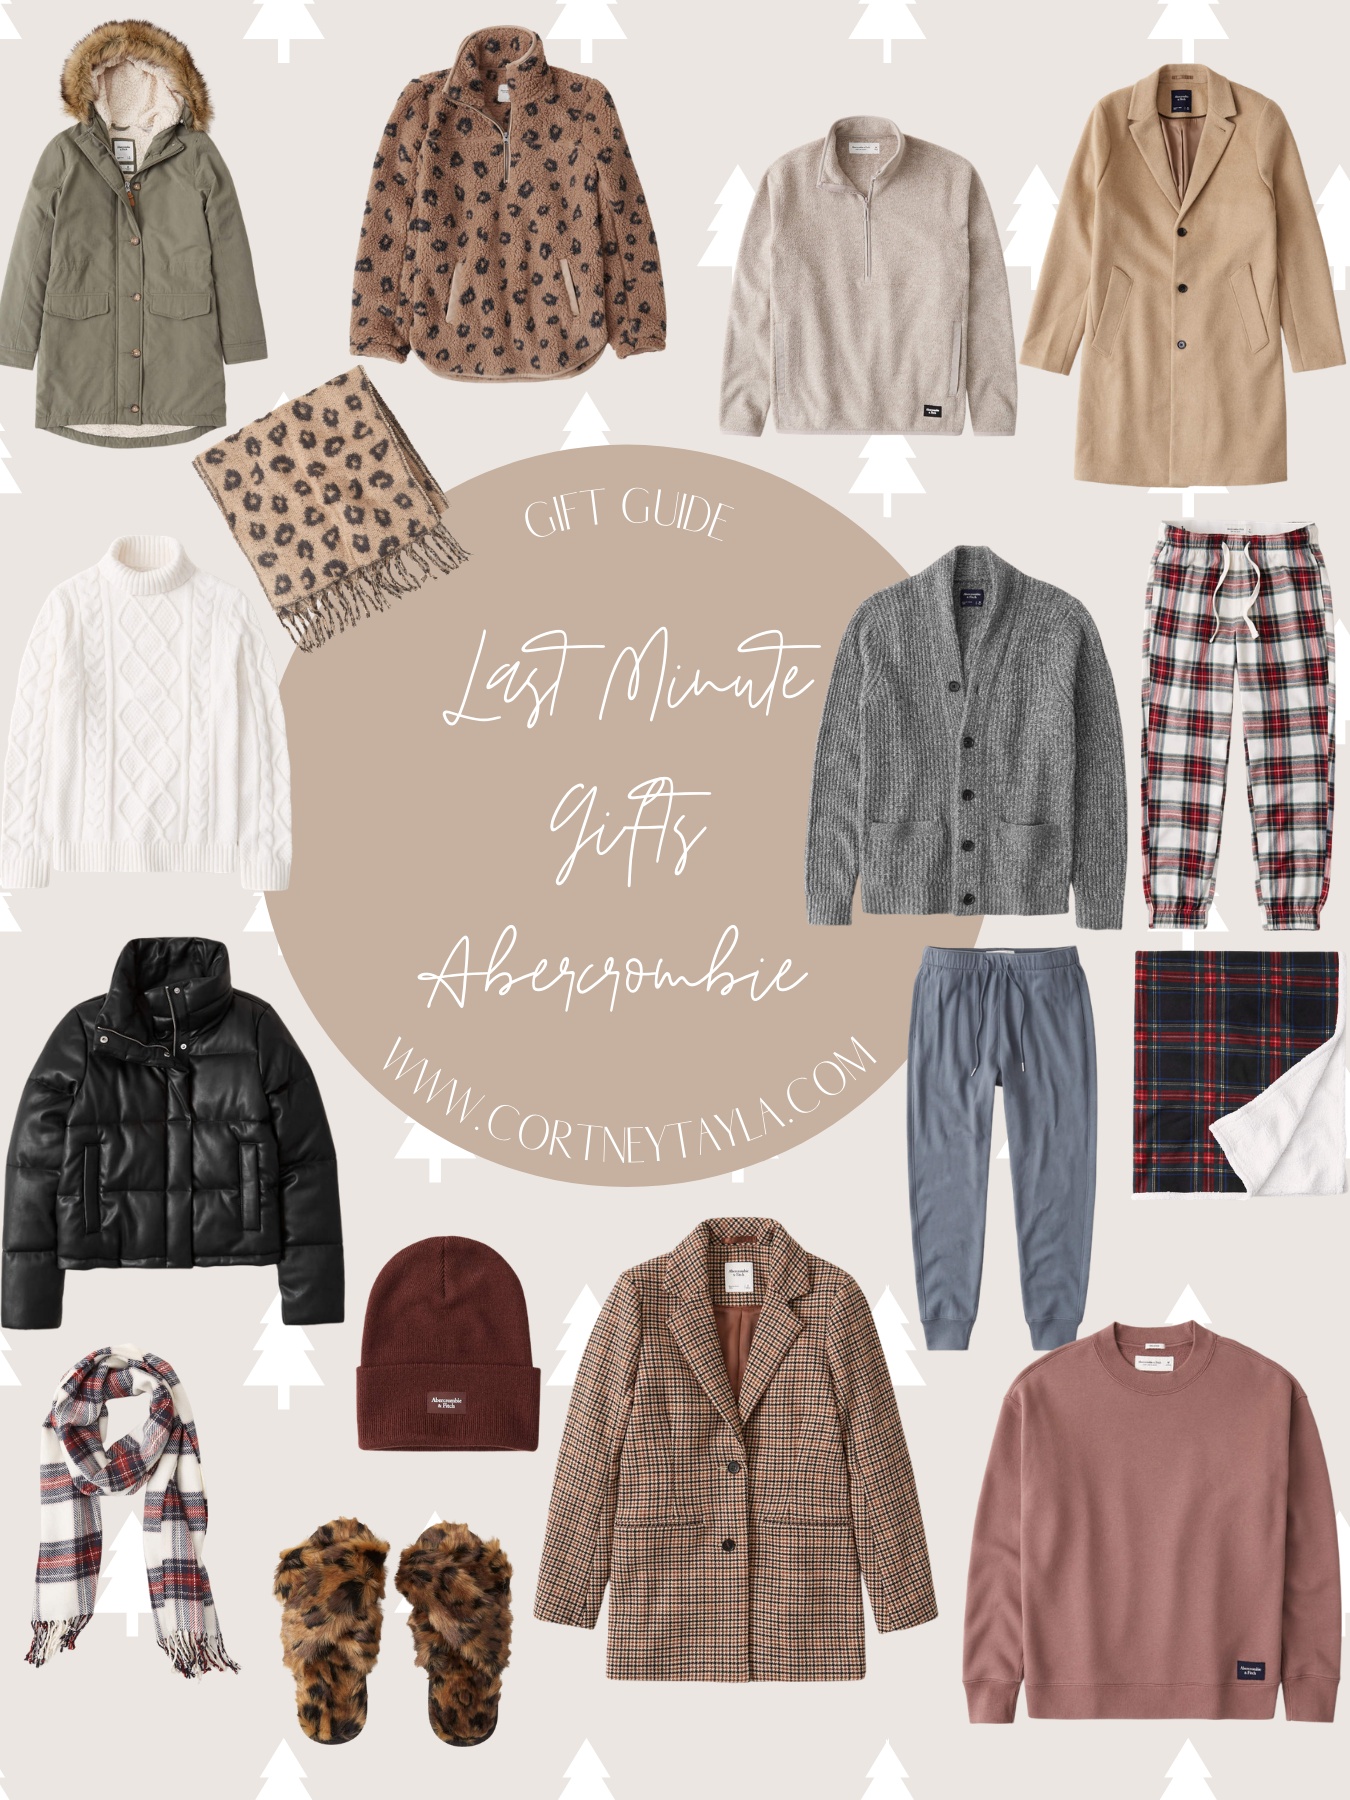 Gift Guide: Last Minute Christmas Gifts From Abercrombie